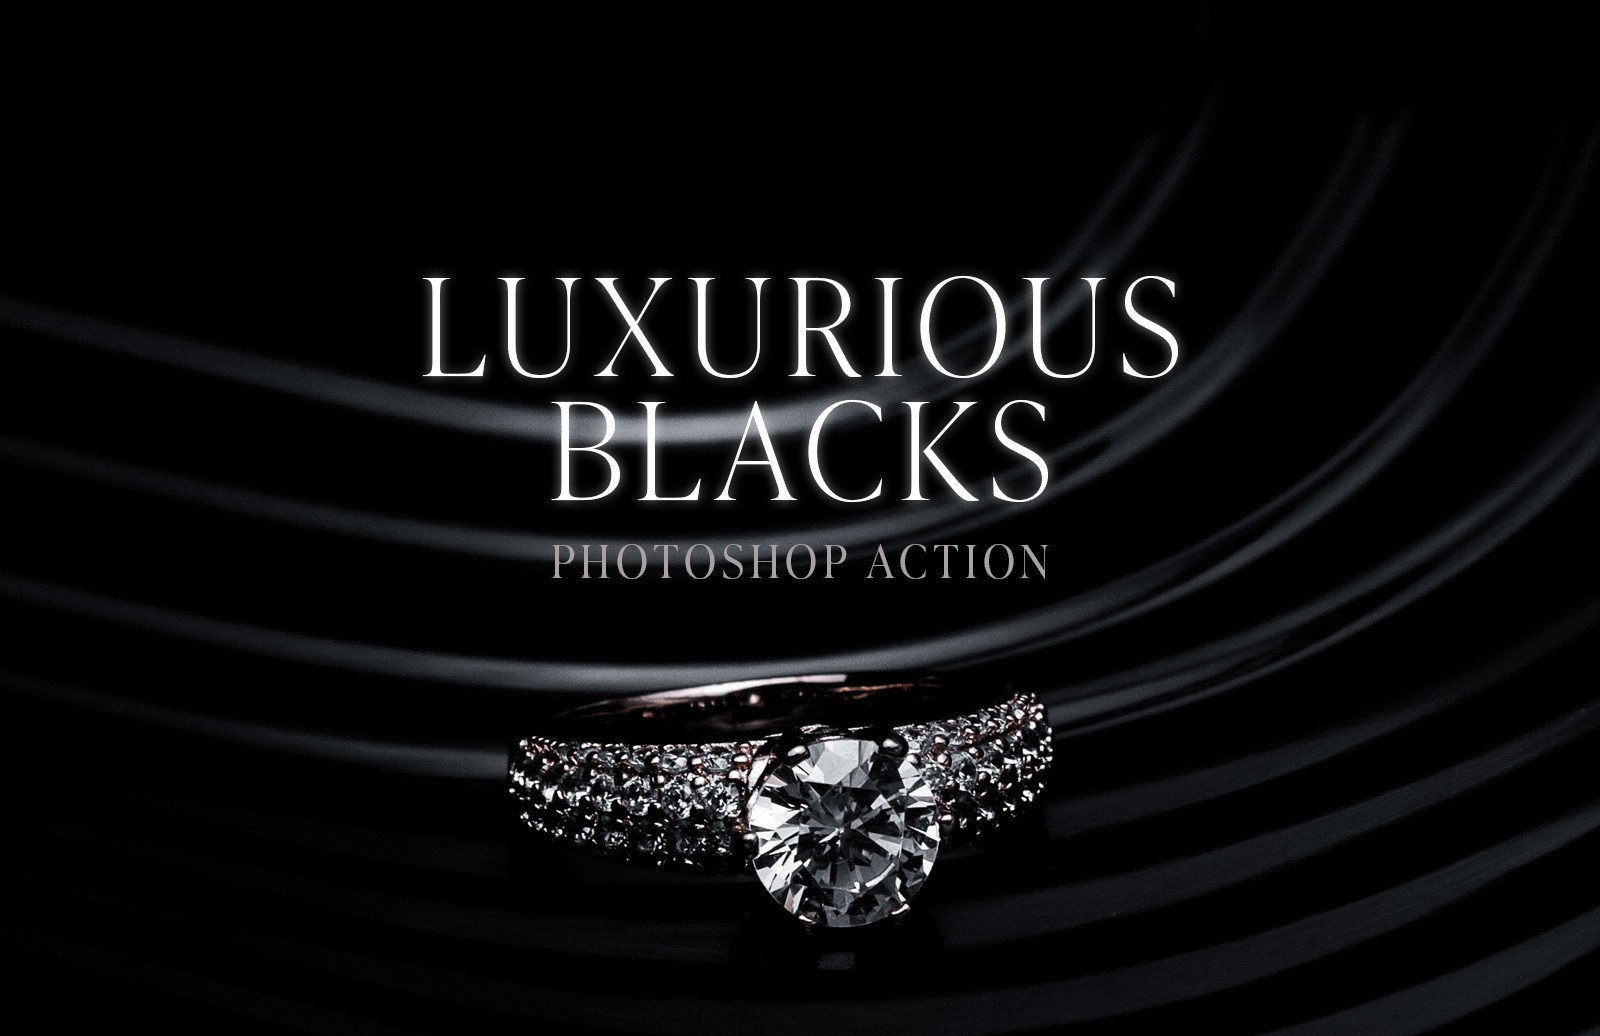 Luxurious Blacks Photoshop Action Preview 1